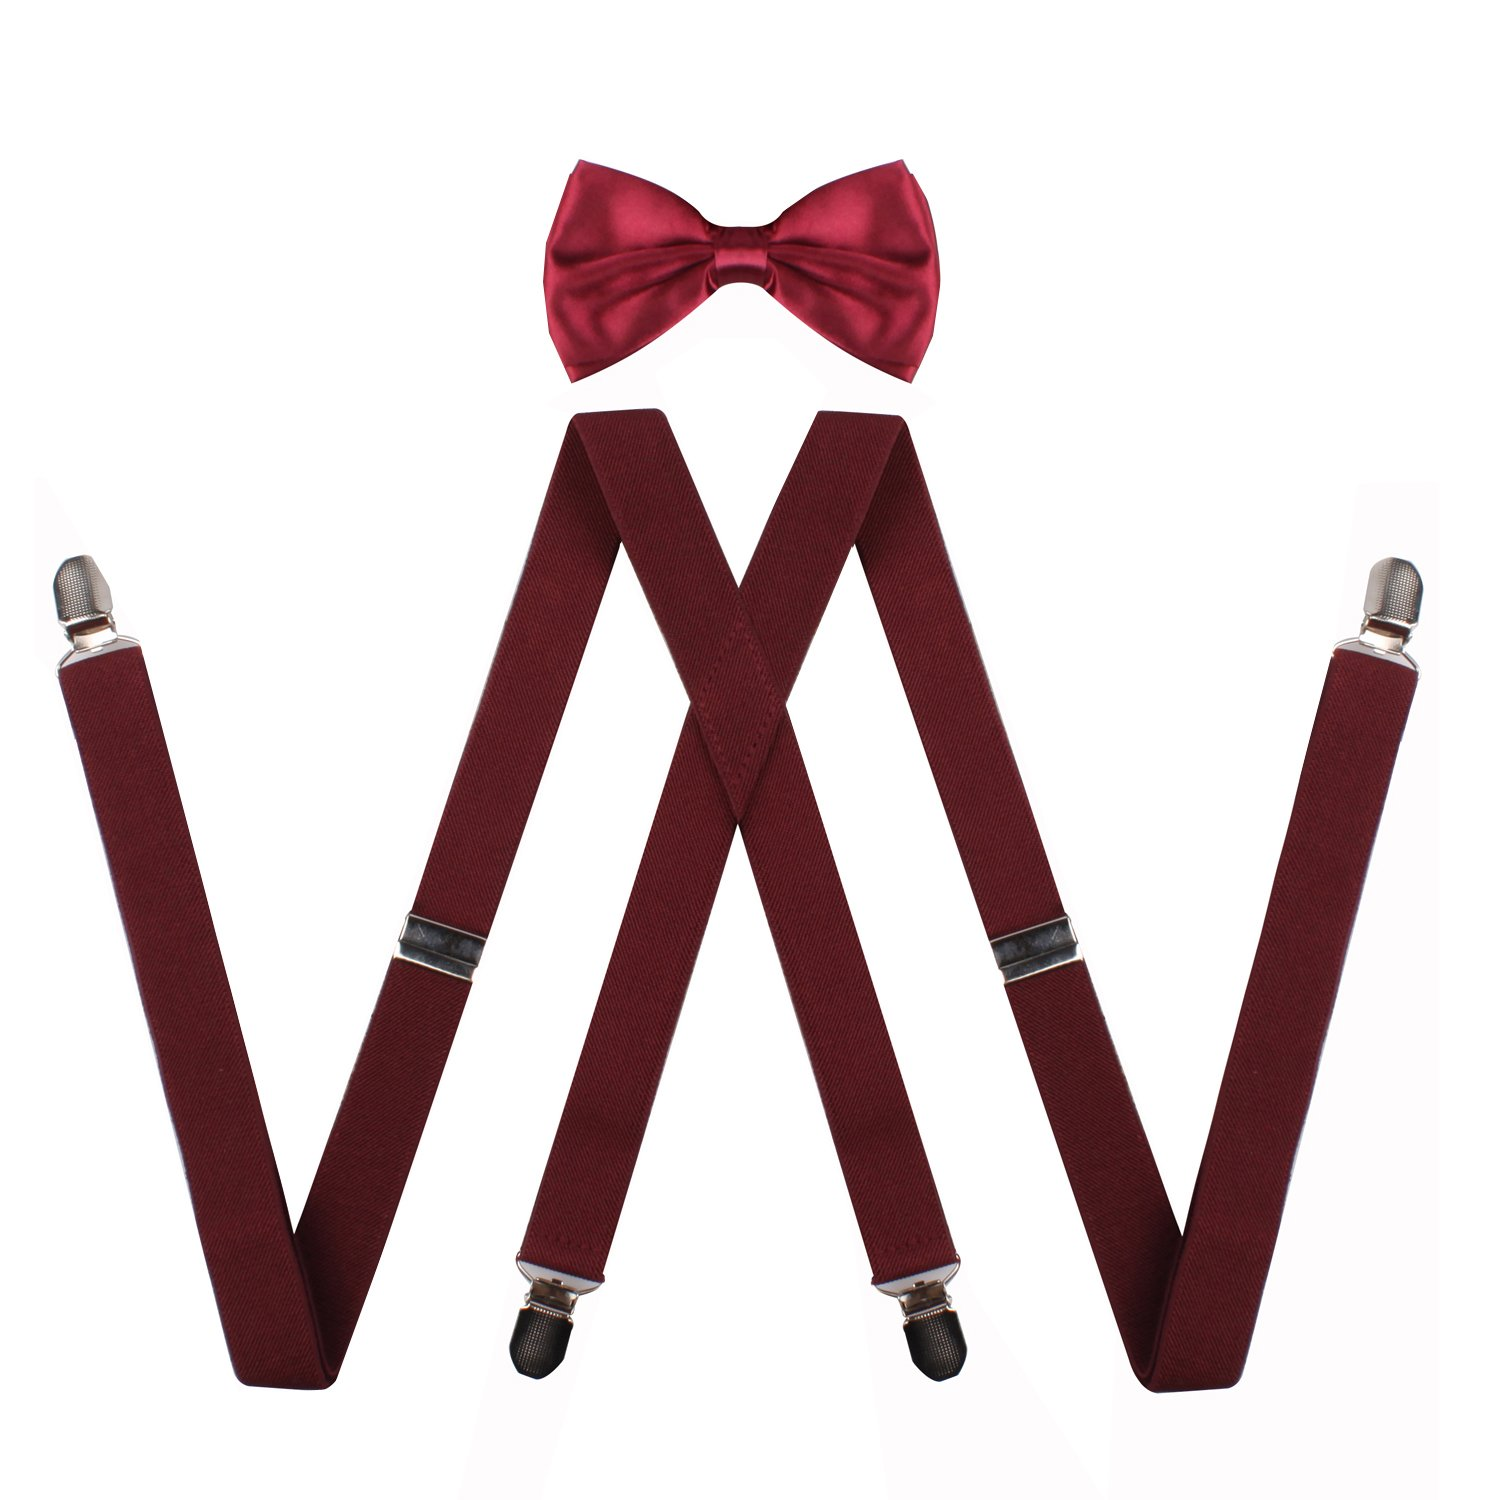 PZLE Men's Elastic Suspenders with Bow Tie Set X Shape SDFHARY17021